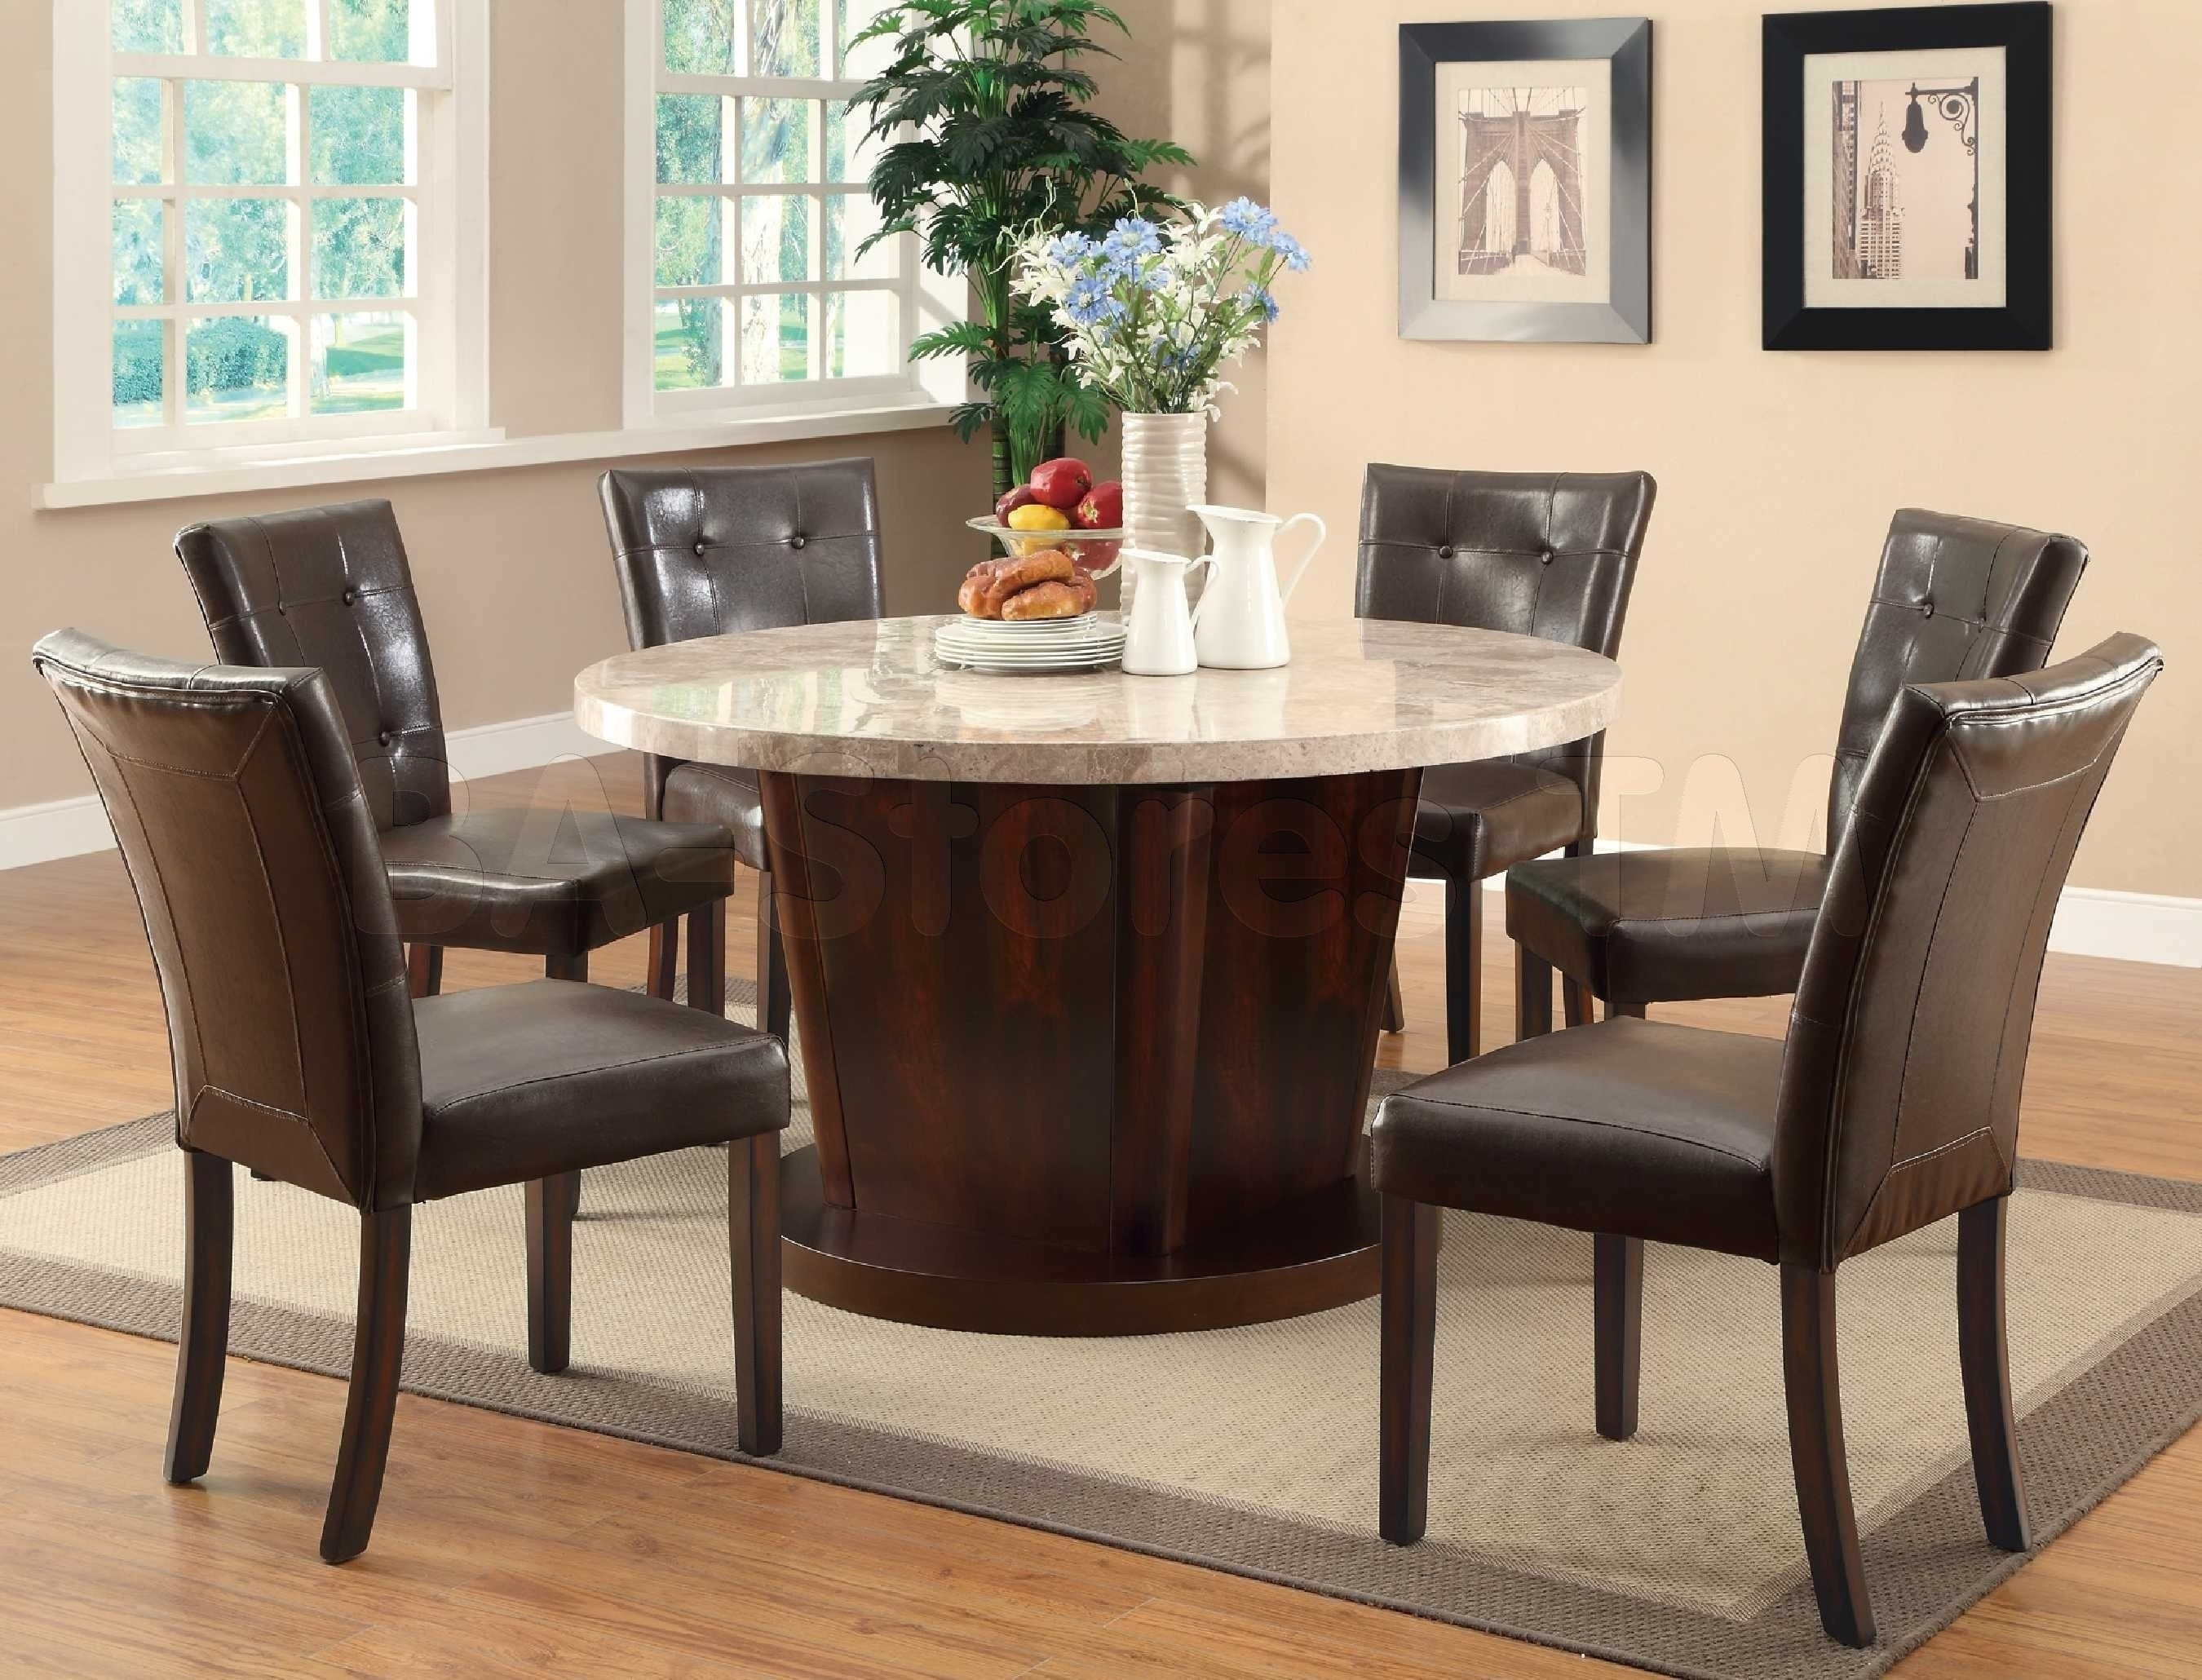 10 Seater Dining Table And Chairs Elegant Modern Dining Room Tables With Most Current 10 Seater Dining Tables And Chairs (View 2 of 25)